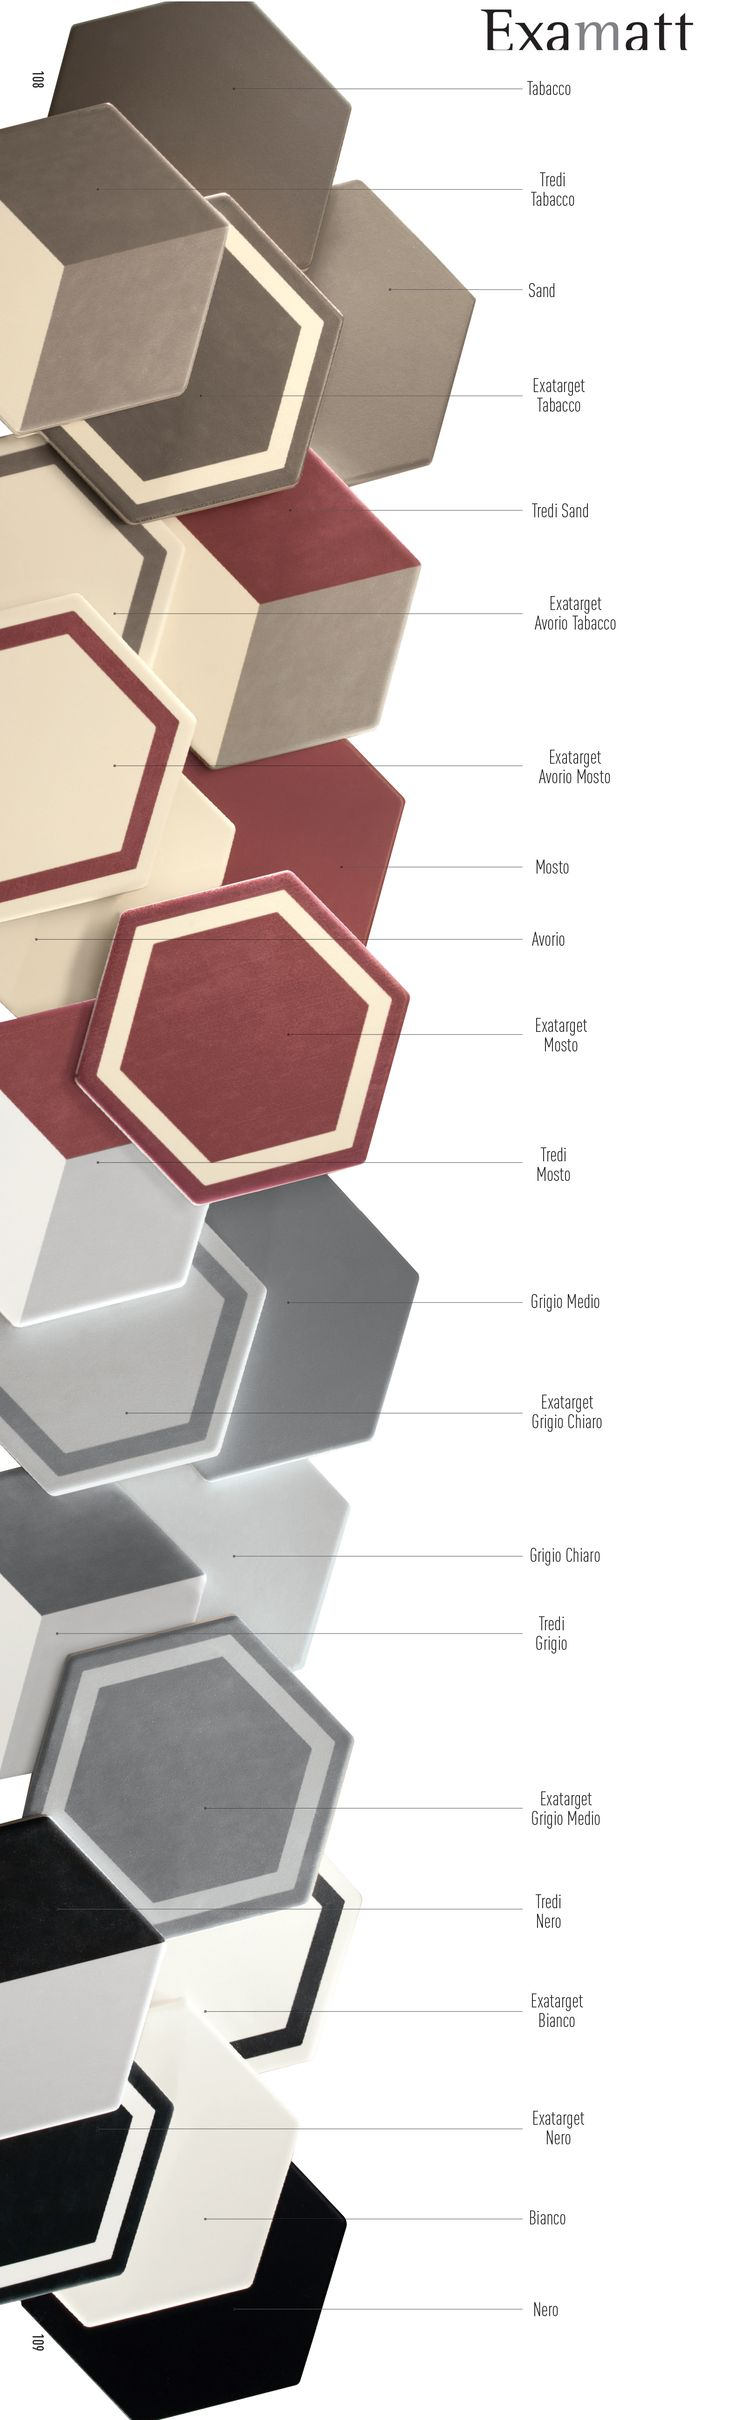 #Examatt #Tonalite #www.tonalite.it #Tiles #Piastrelle #Carreaux #Azulejos #Hexagonal #Decorated #Texture #Wall Tiles #Floor Tiles #Backsplash #Kitchen #Bathroom